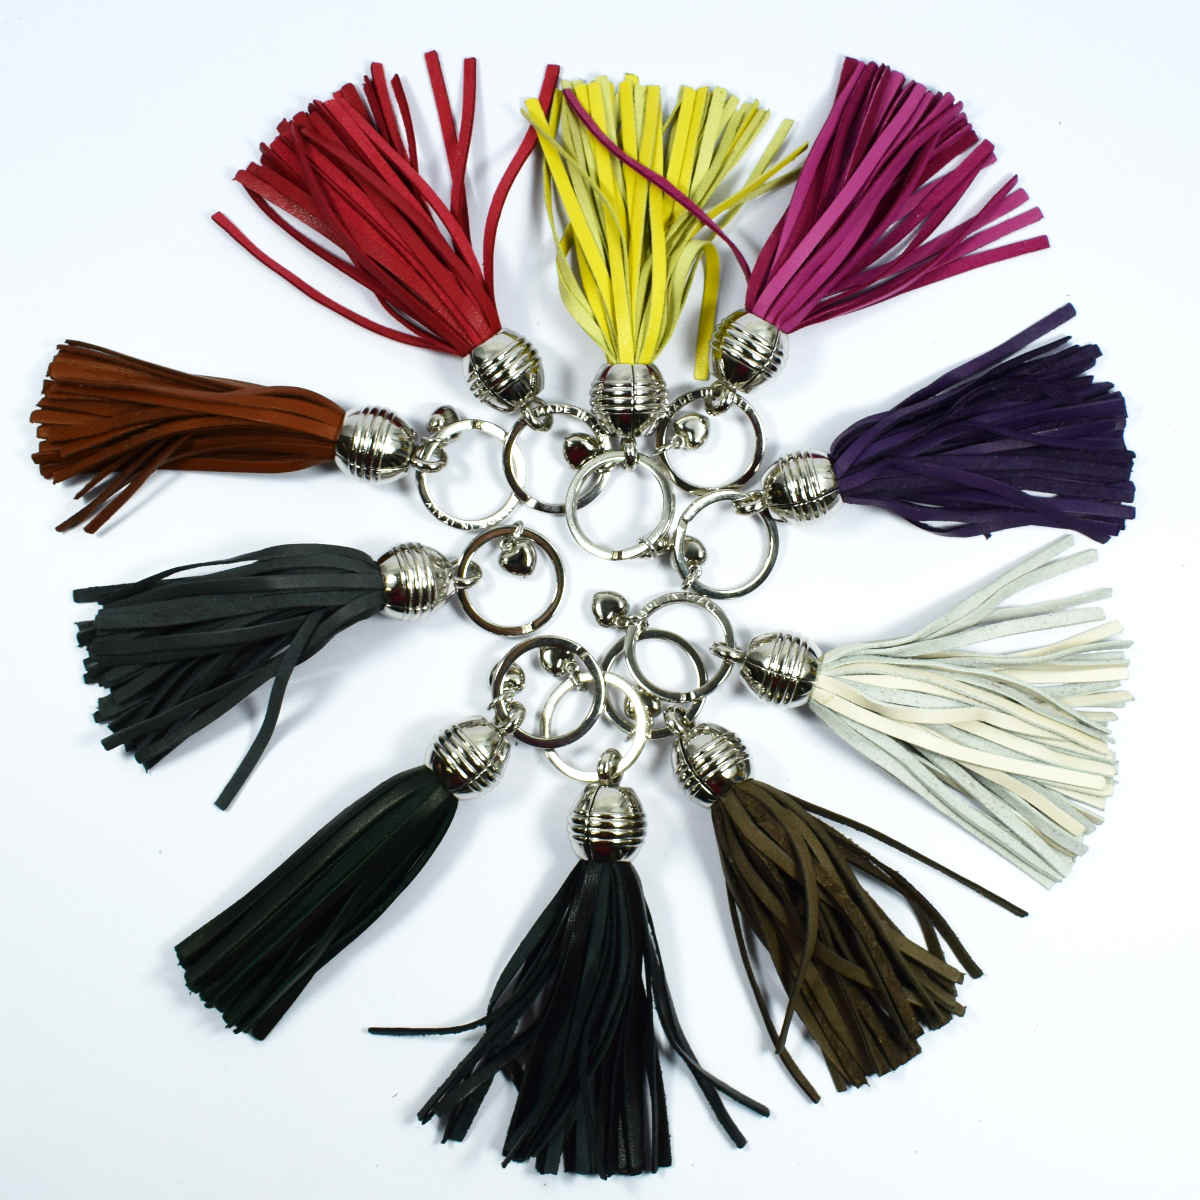 1408 Keyring with tassel by Bottega Fiorentina